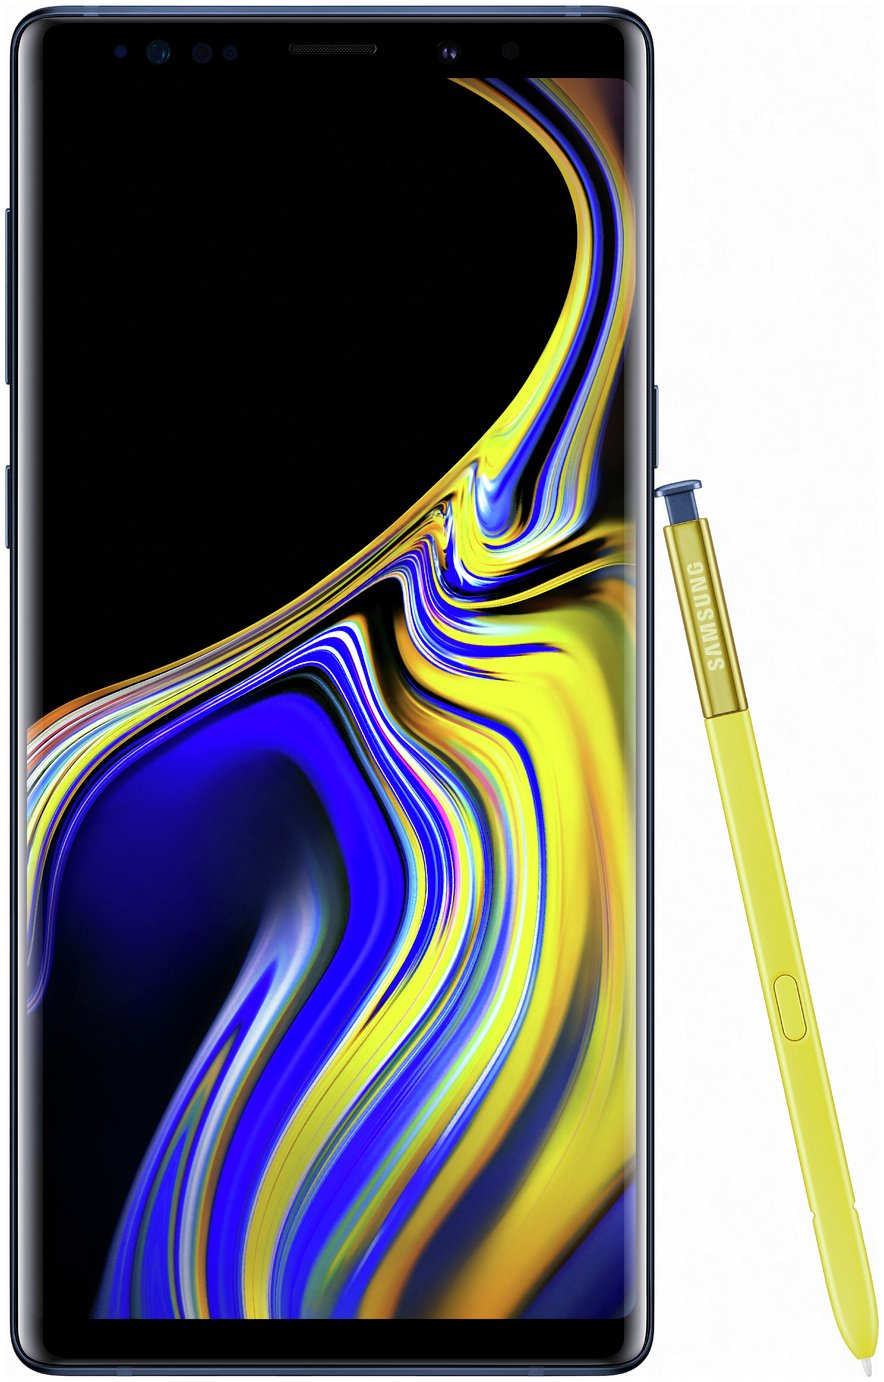 SIM Free Samsung Galaxy Note 9 128GB Mobile Phone - Blue